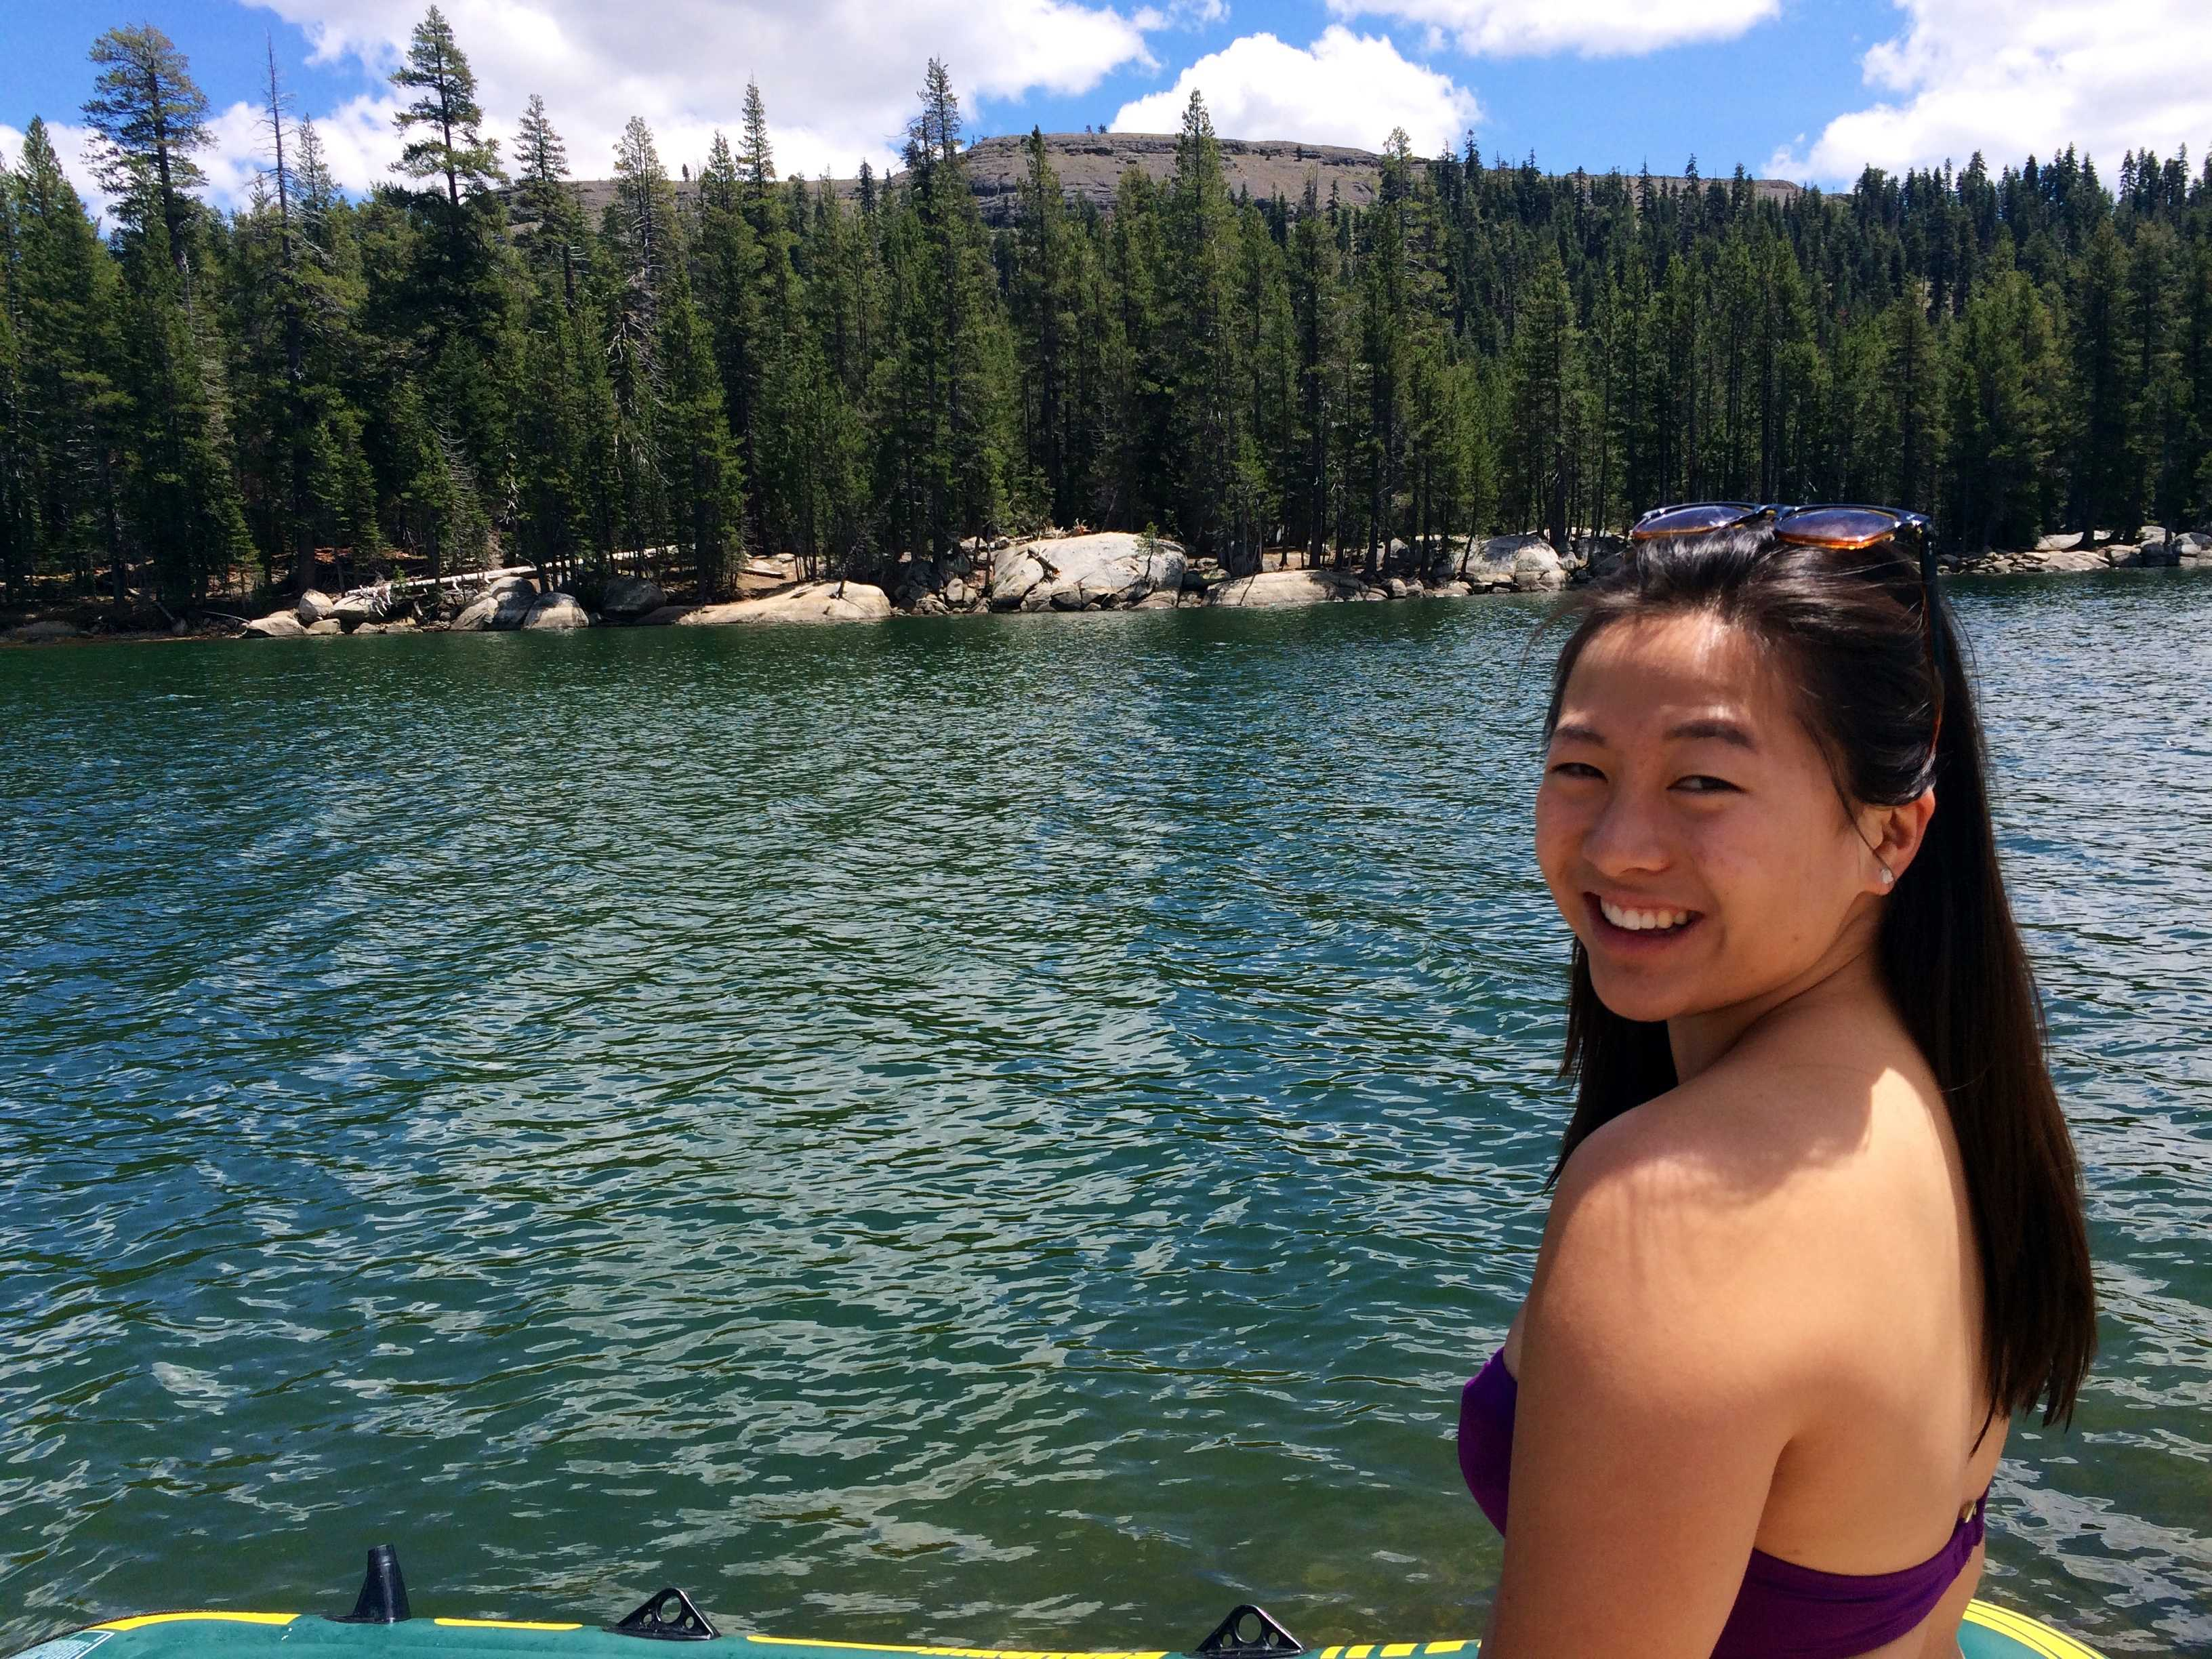 Choosing all in: senior Lisa Hao's journey of recovery